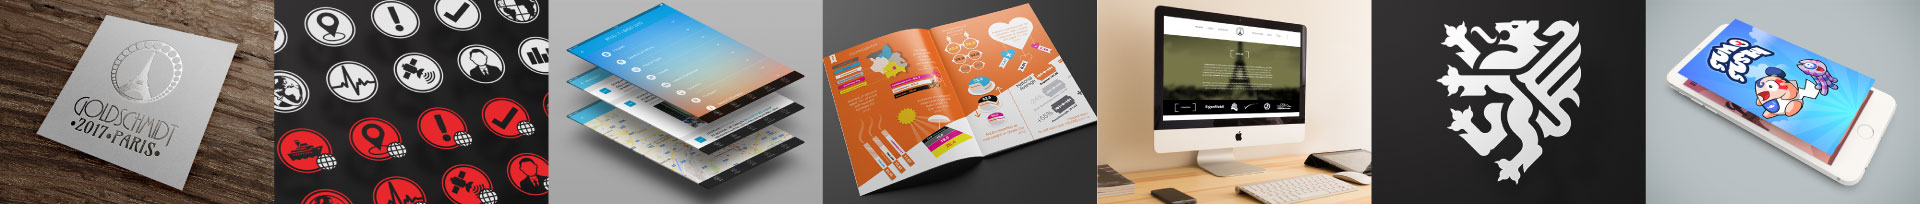 Cambridge graphic design, illustration and logo design